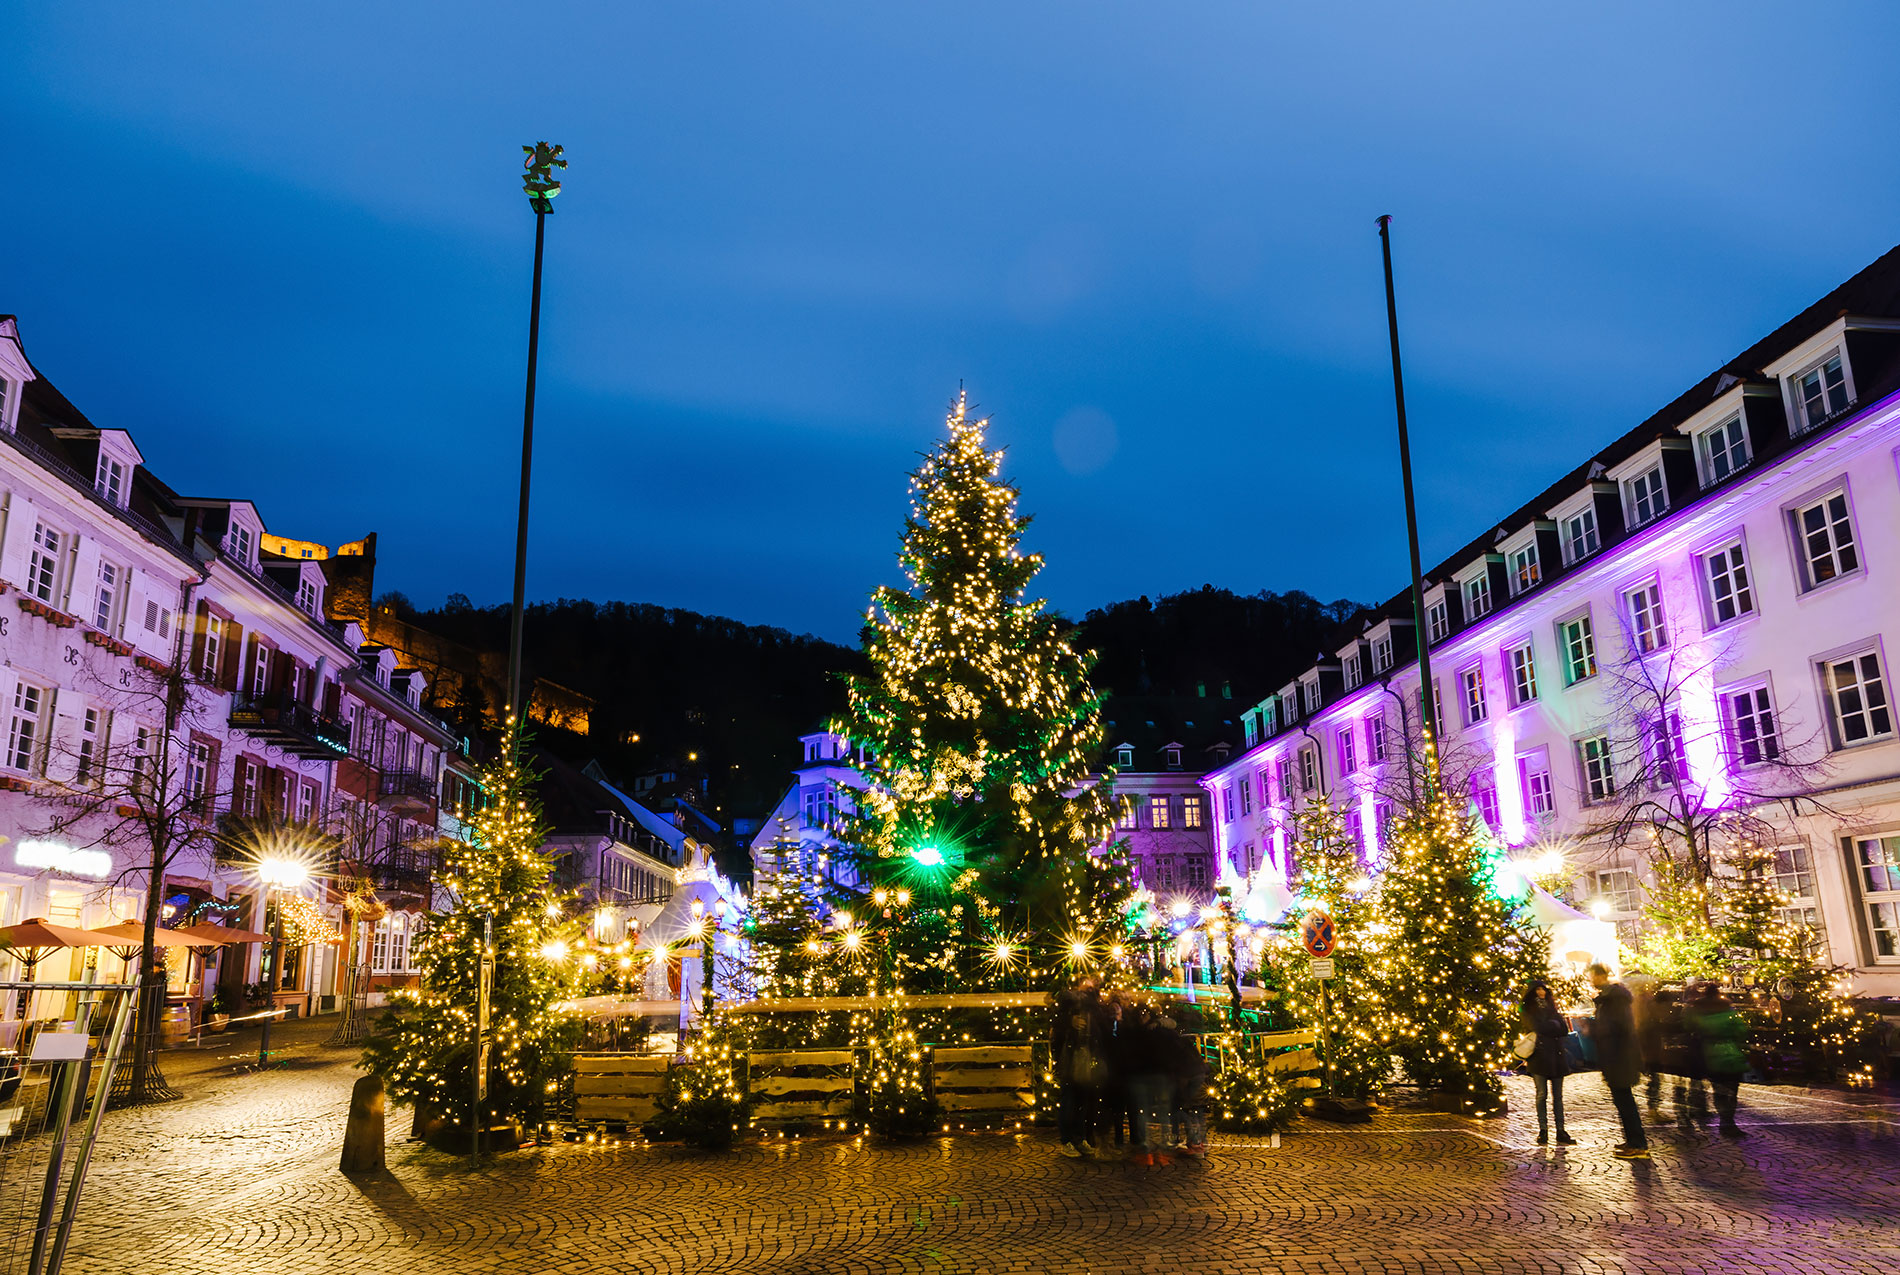 Christmas Trees lit up in Heidelberg, Germany